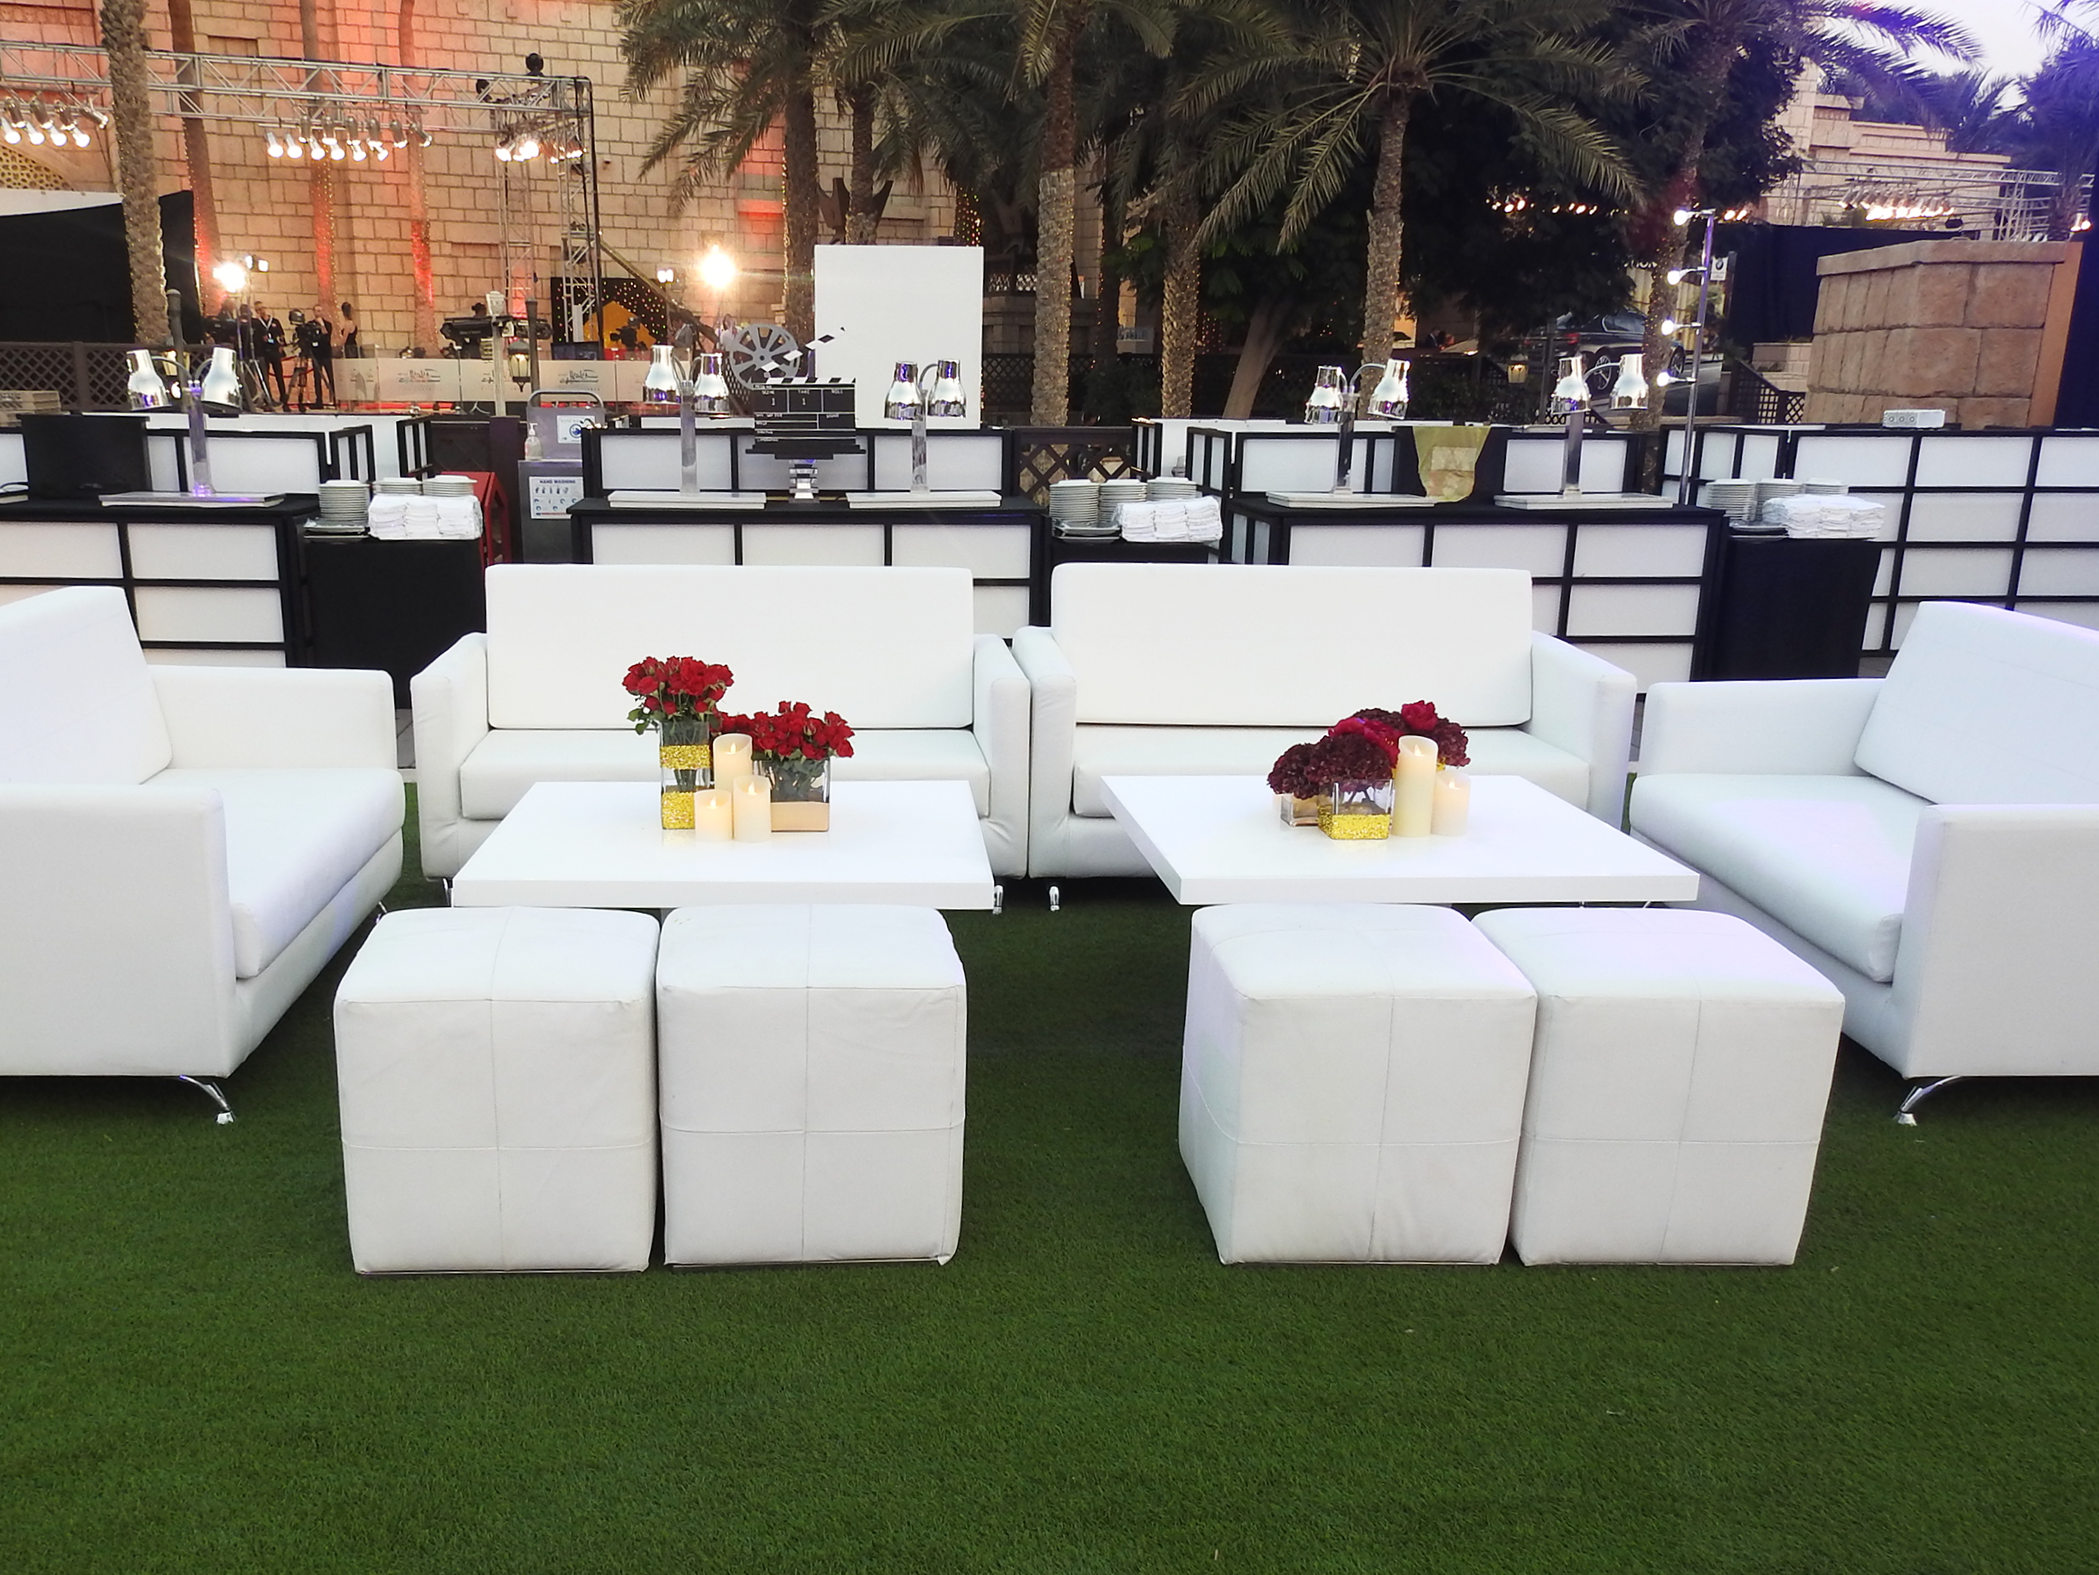 Square Pouffe Available For Rent Or For Sale In Dubai And The Uae